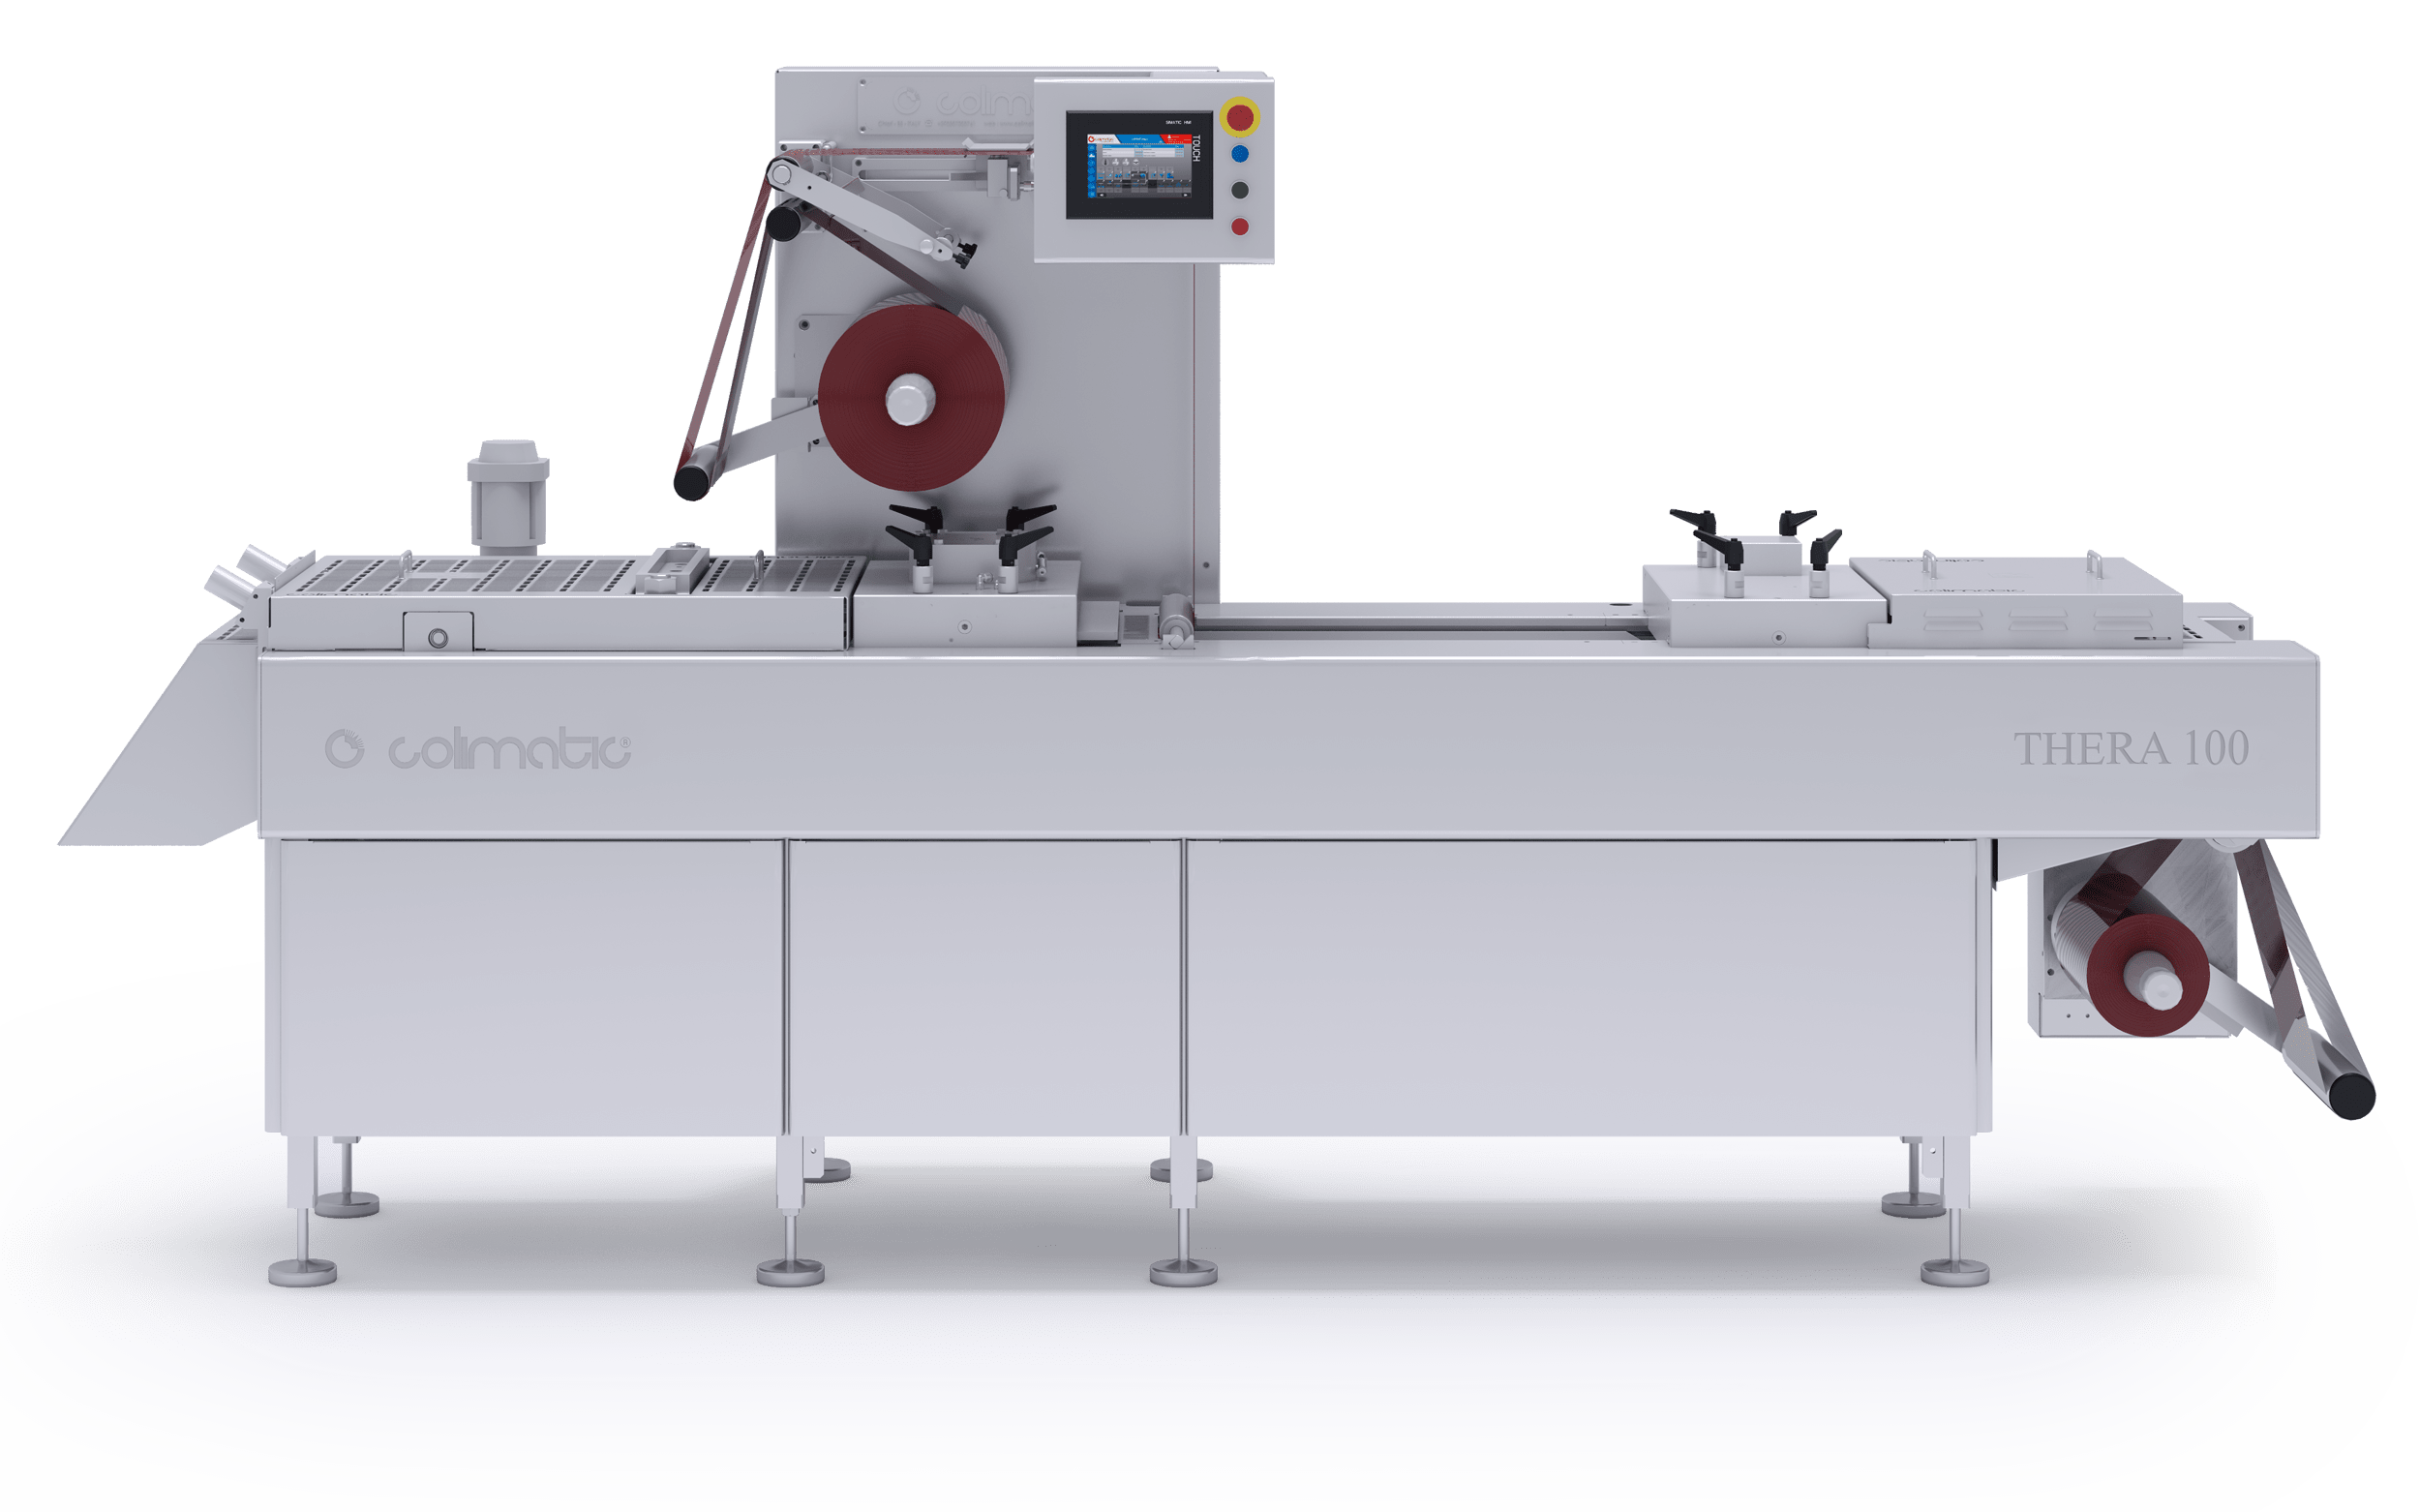 Technical draw thermoforming machine 100 - Colimatic thermoforming machines